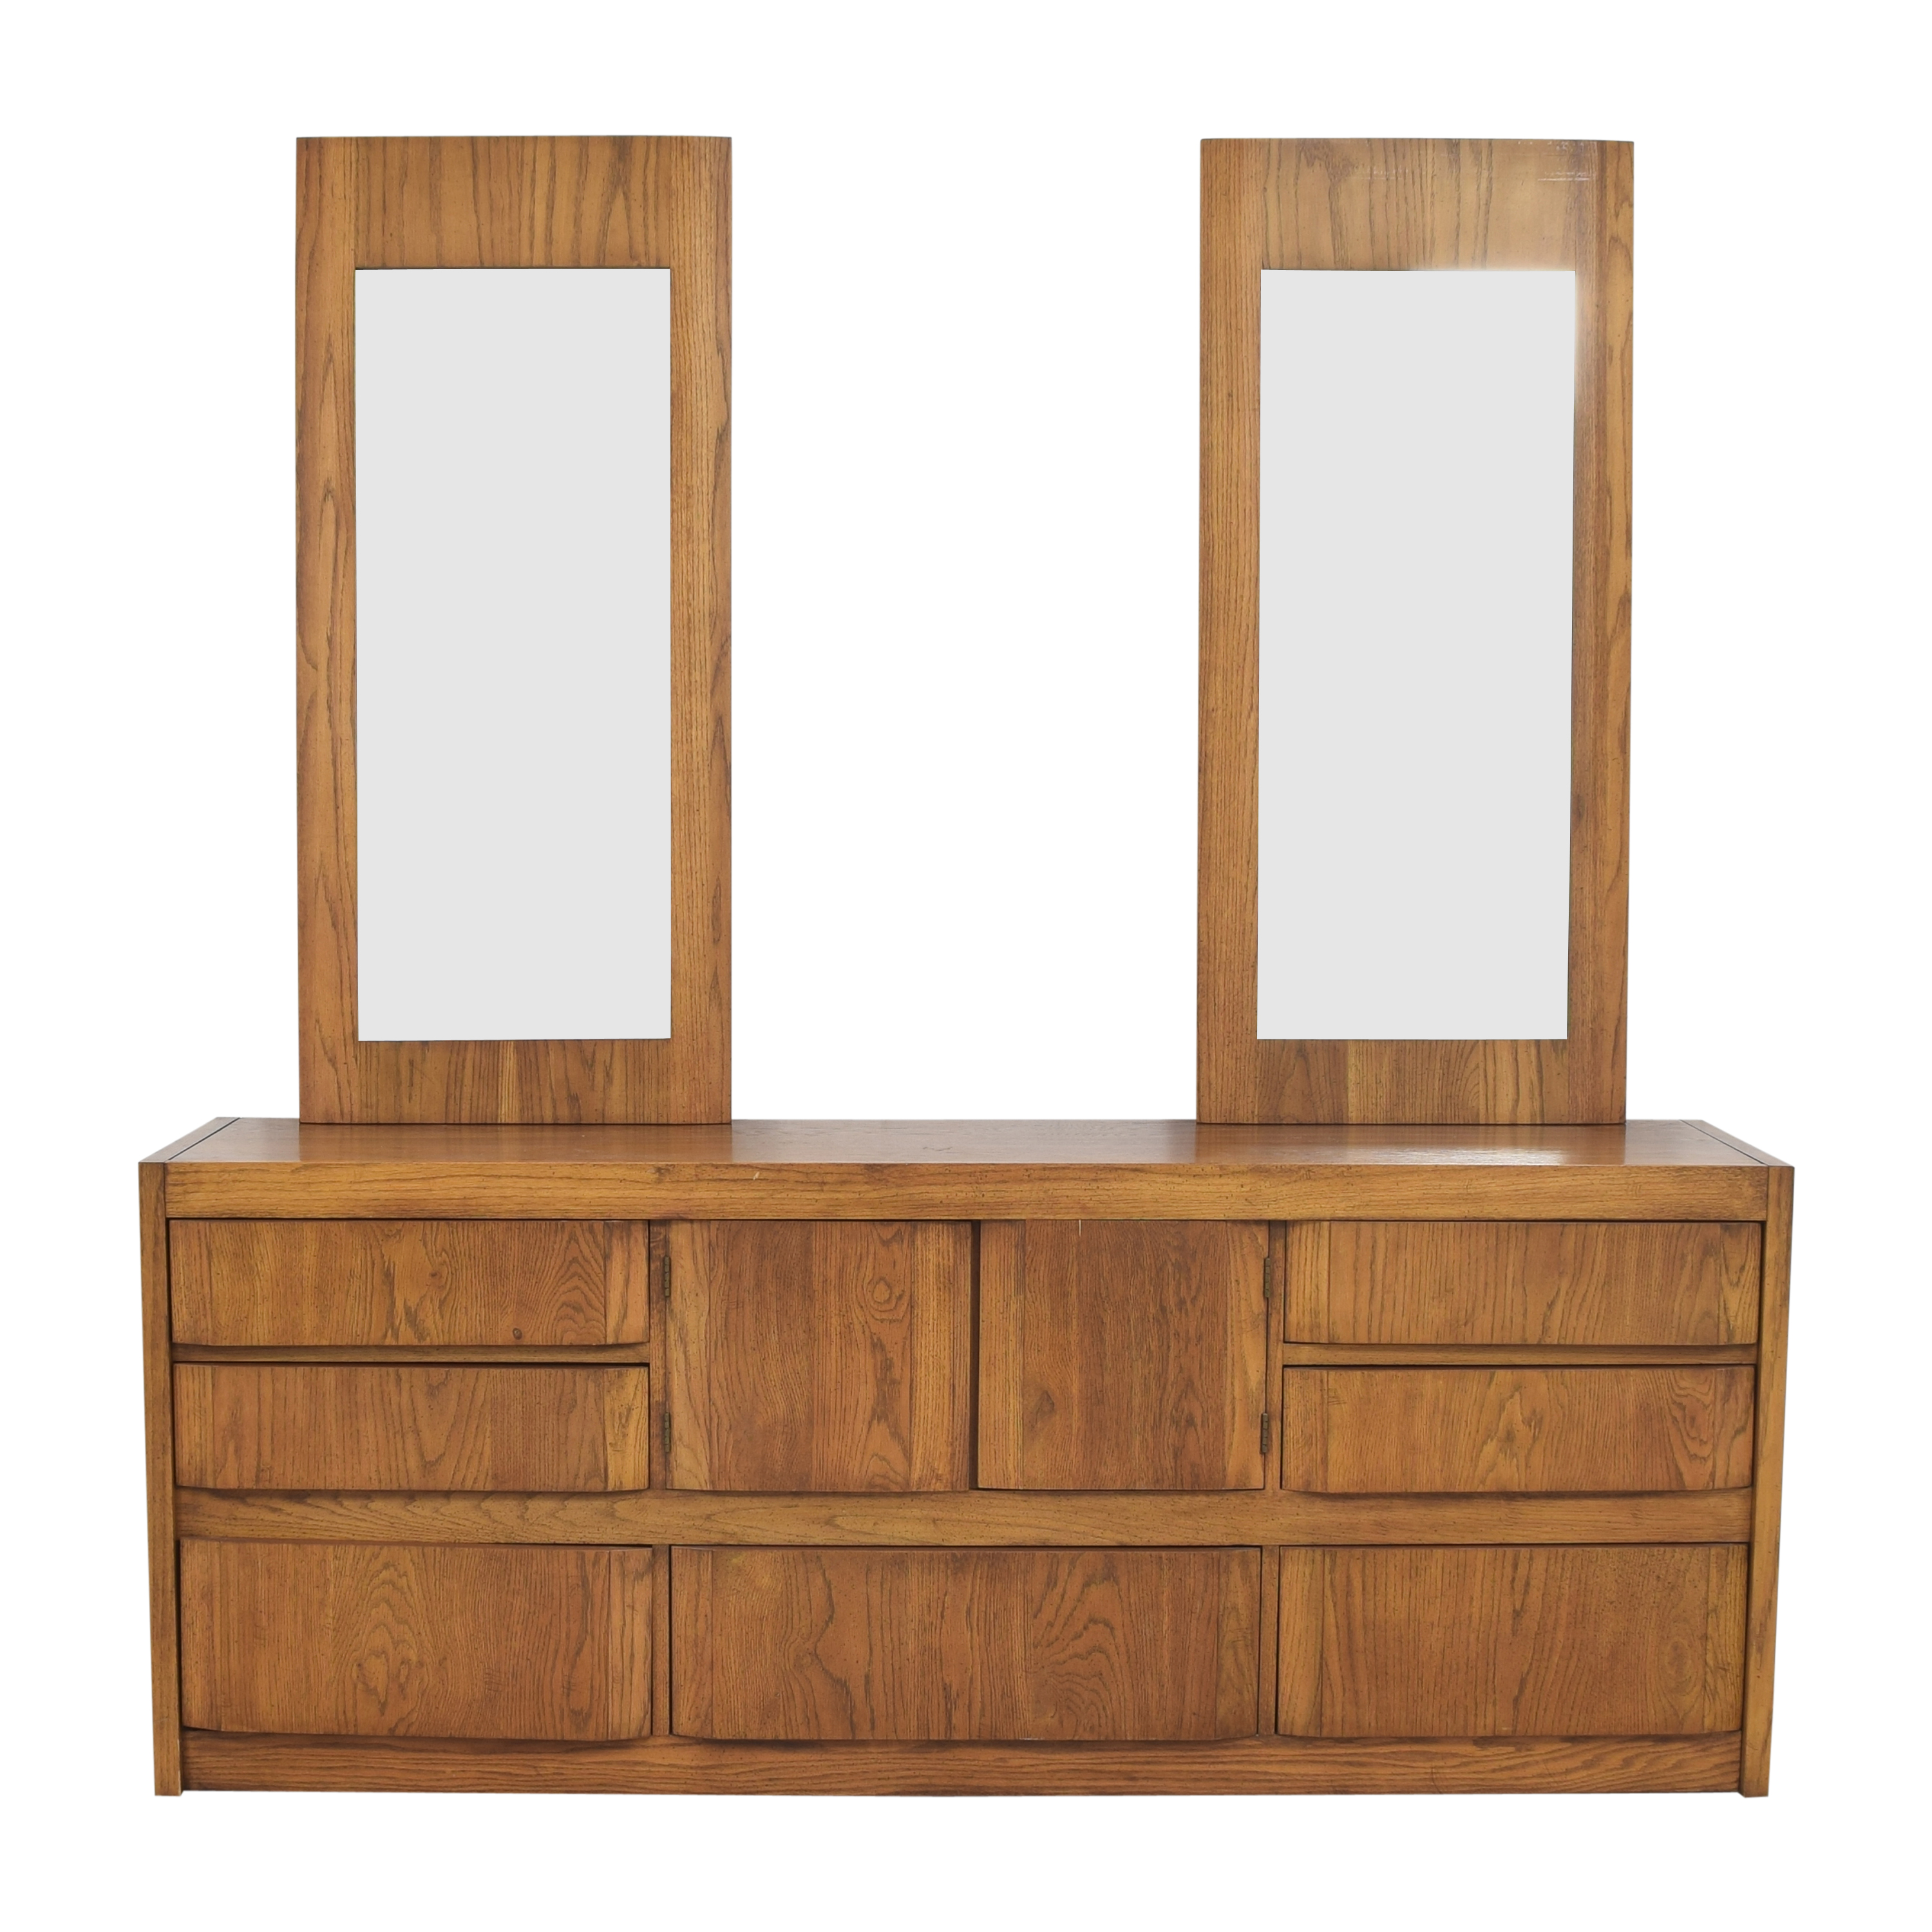 buy Huntley by Thomasville Triple Dresser with Mirrors Thomasville Storage